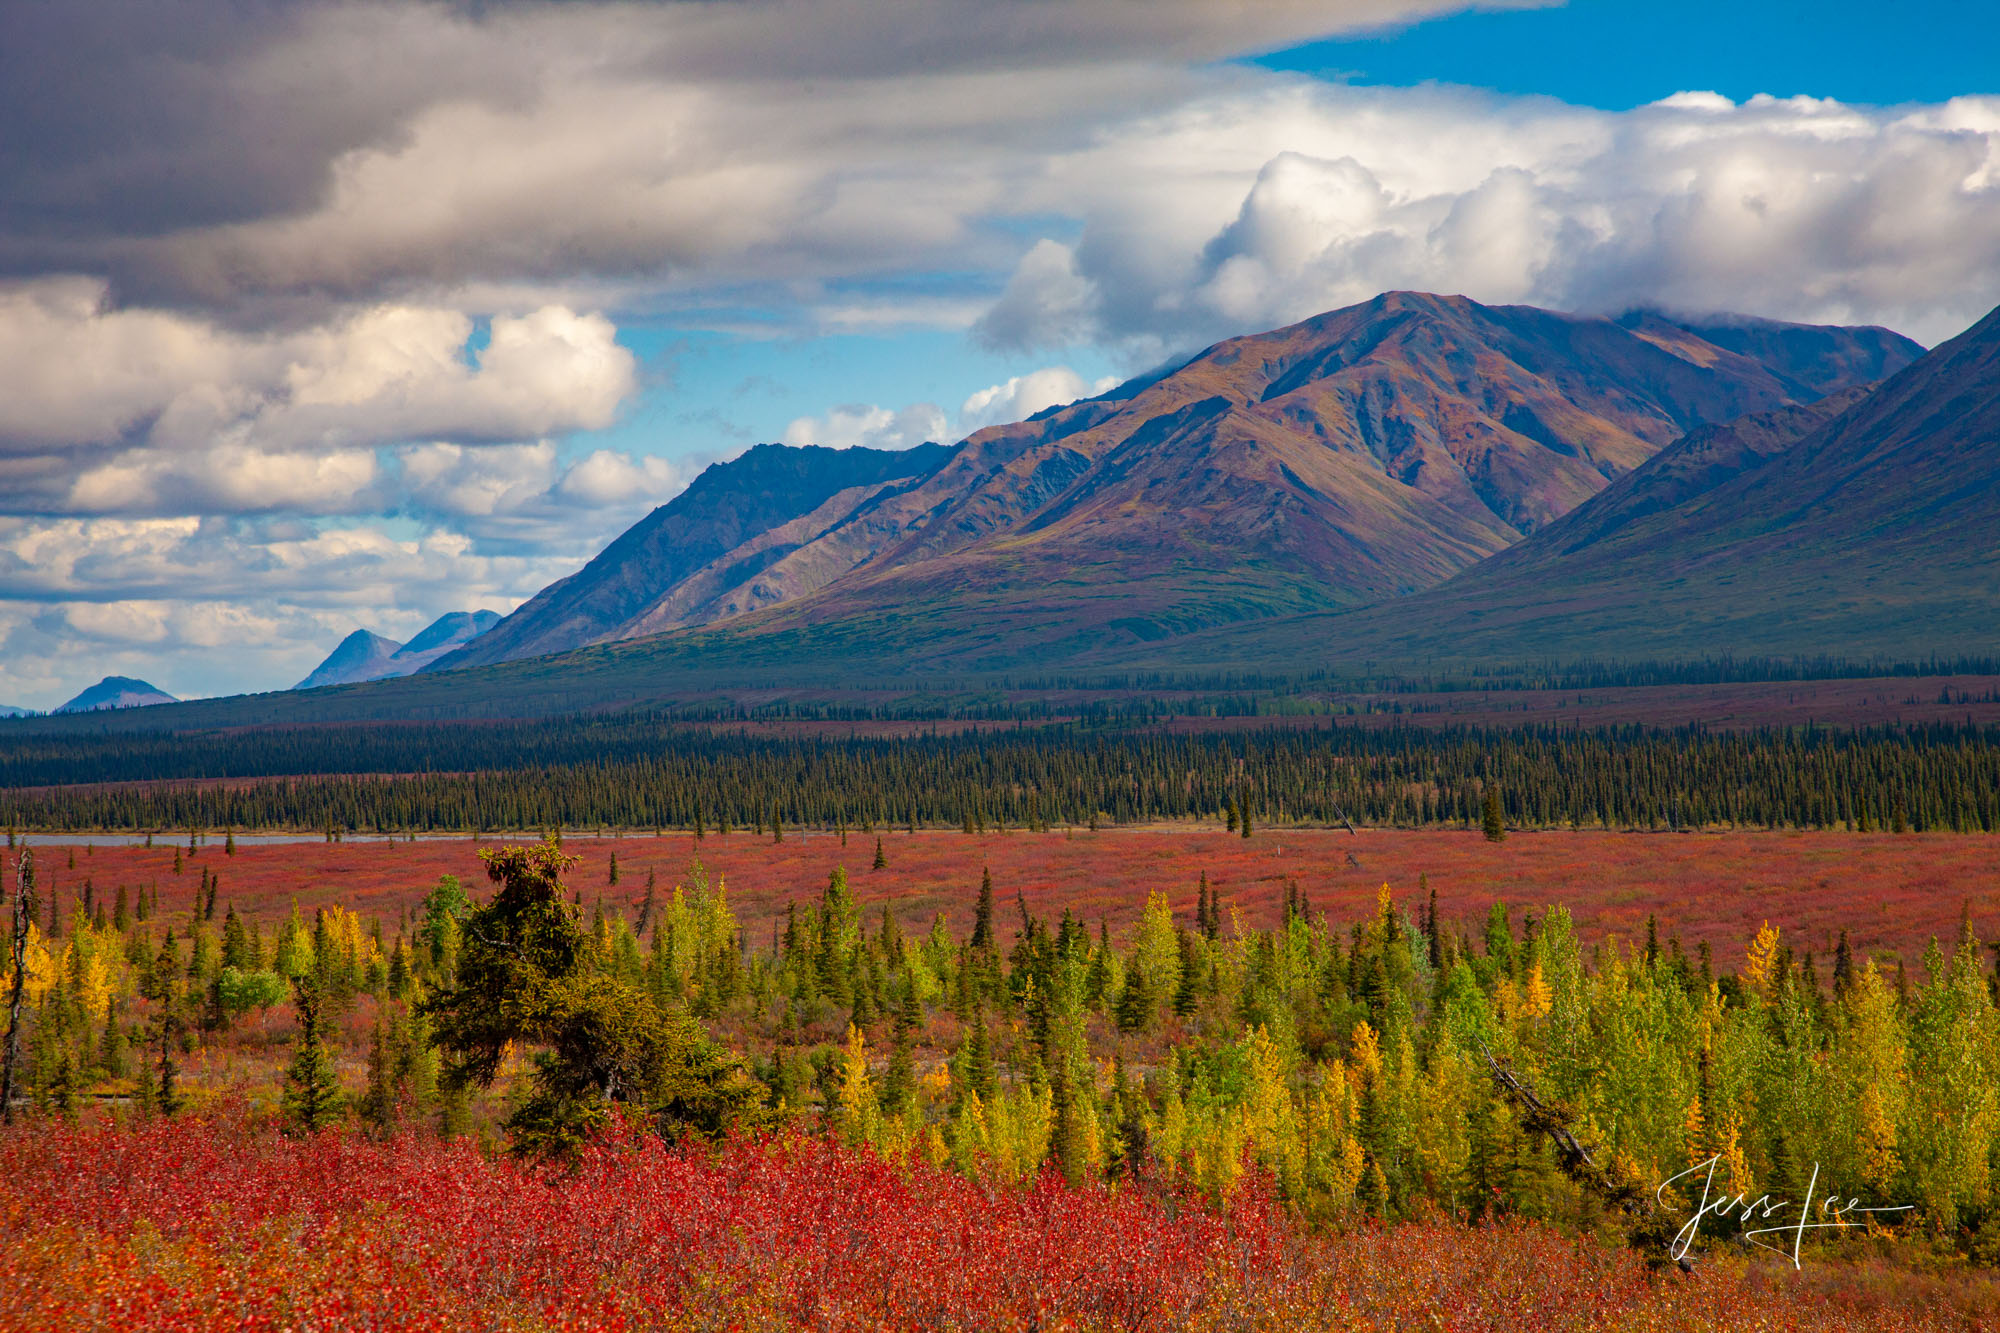 Talkeetna Hills in Alaska turning autumn colors.